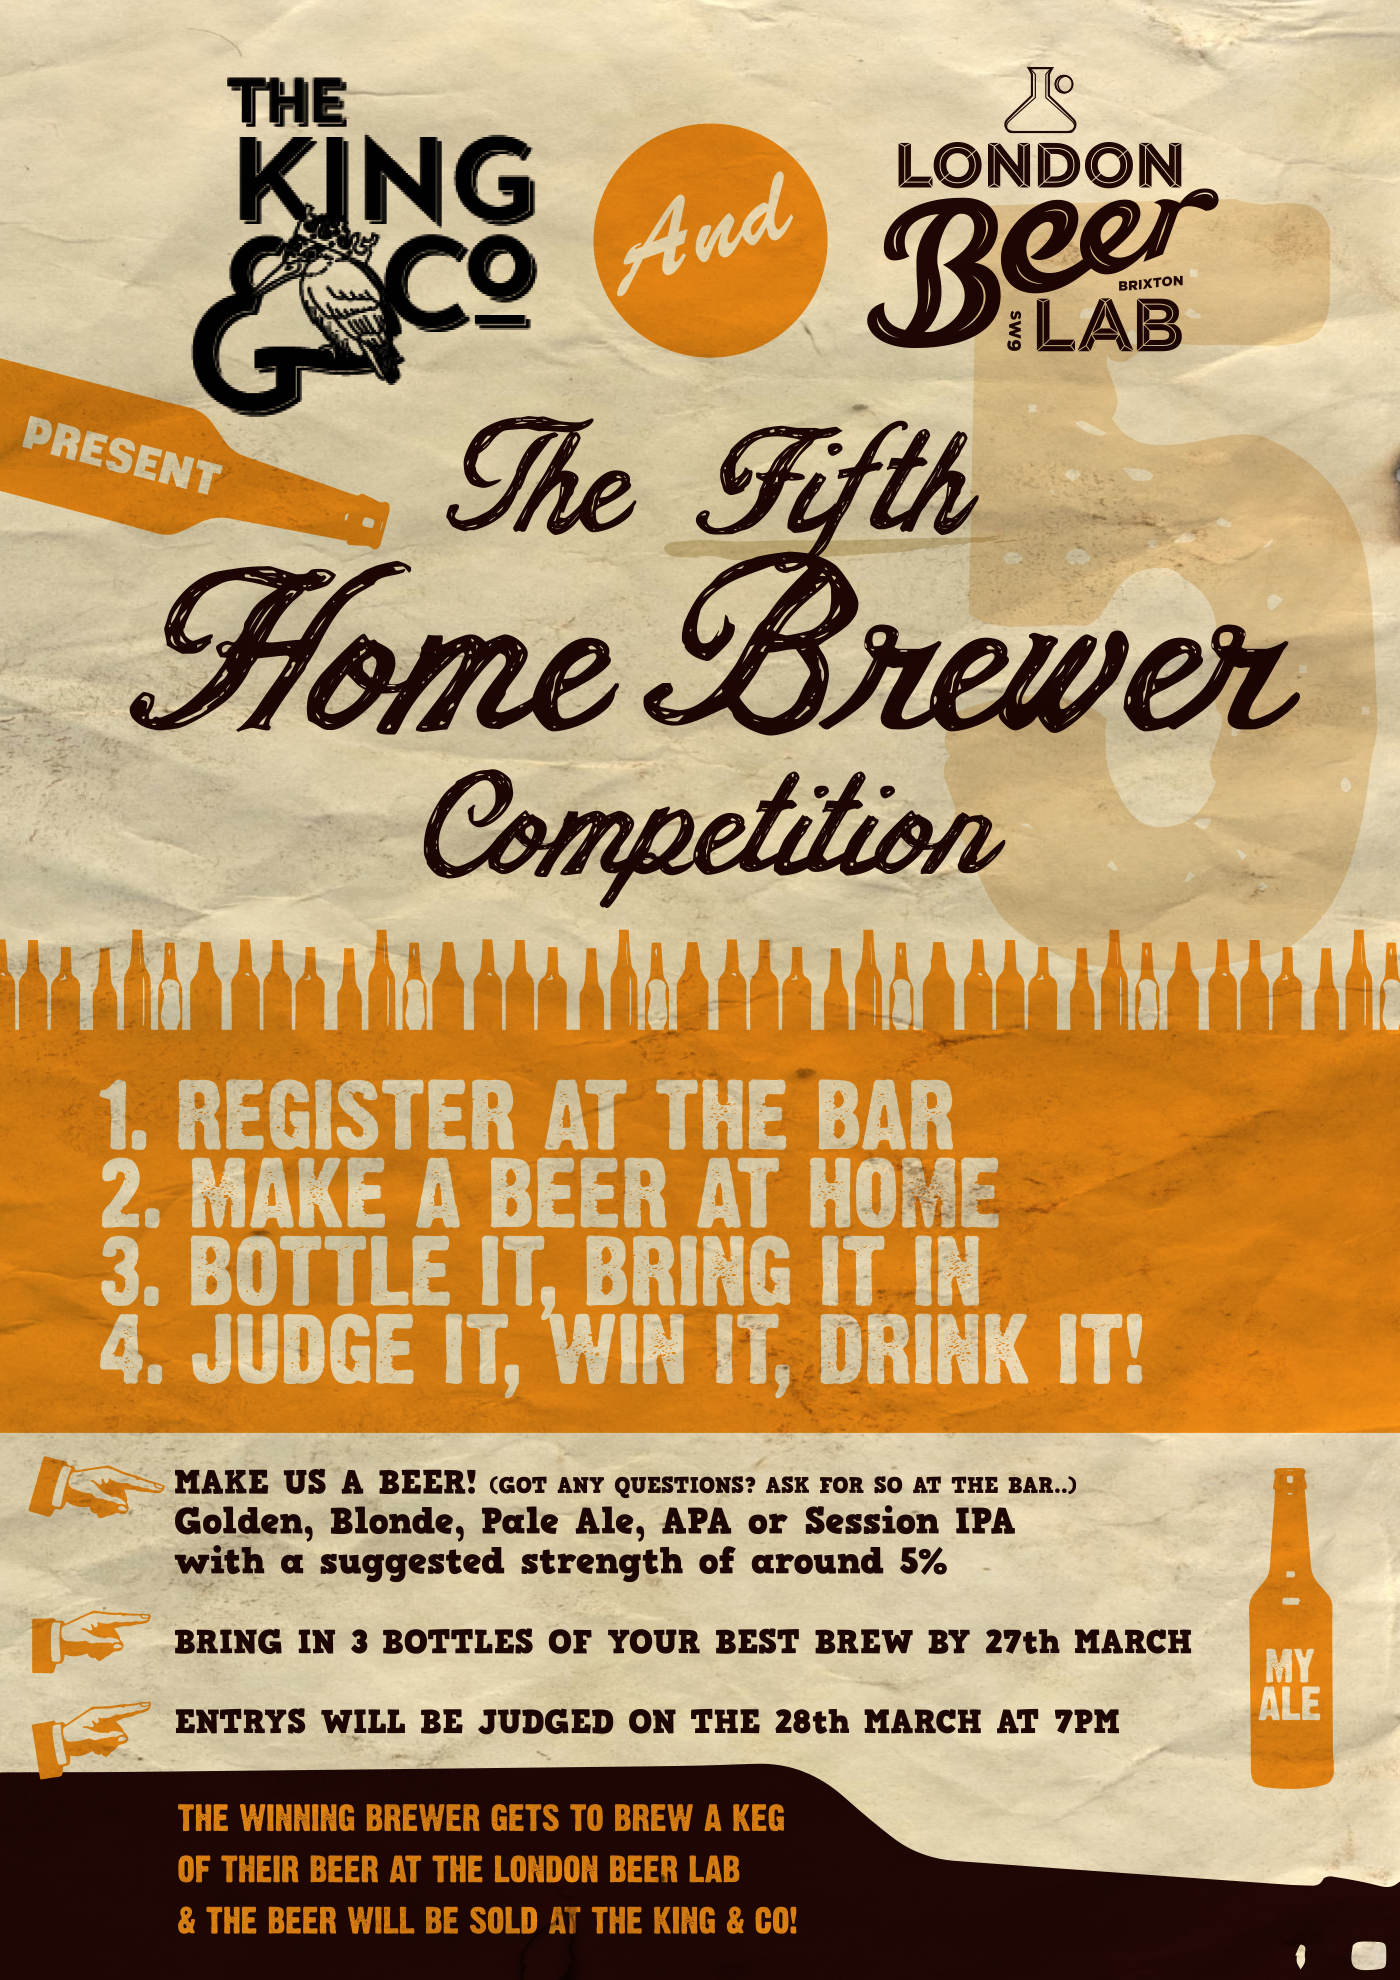 Fifth Home Brewer Competition